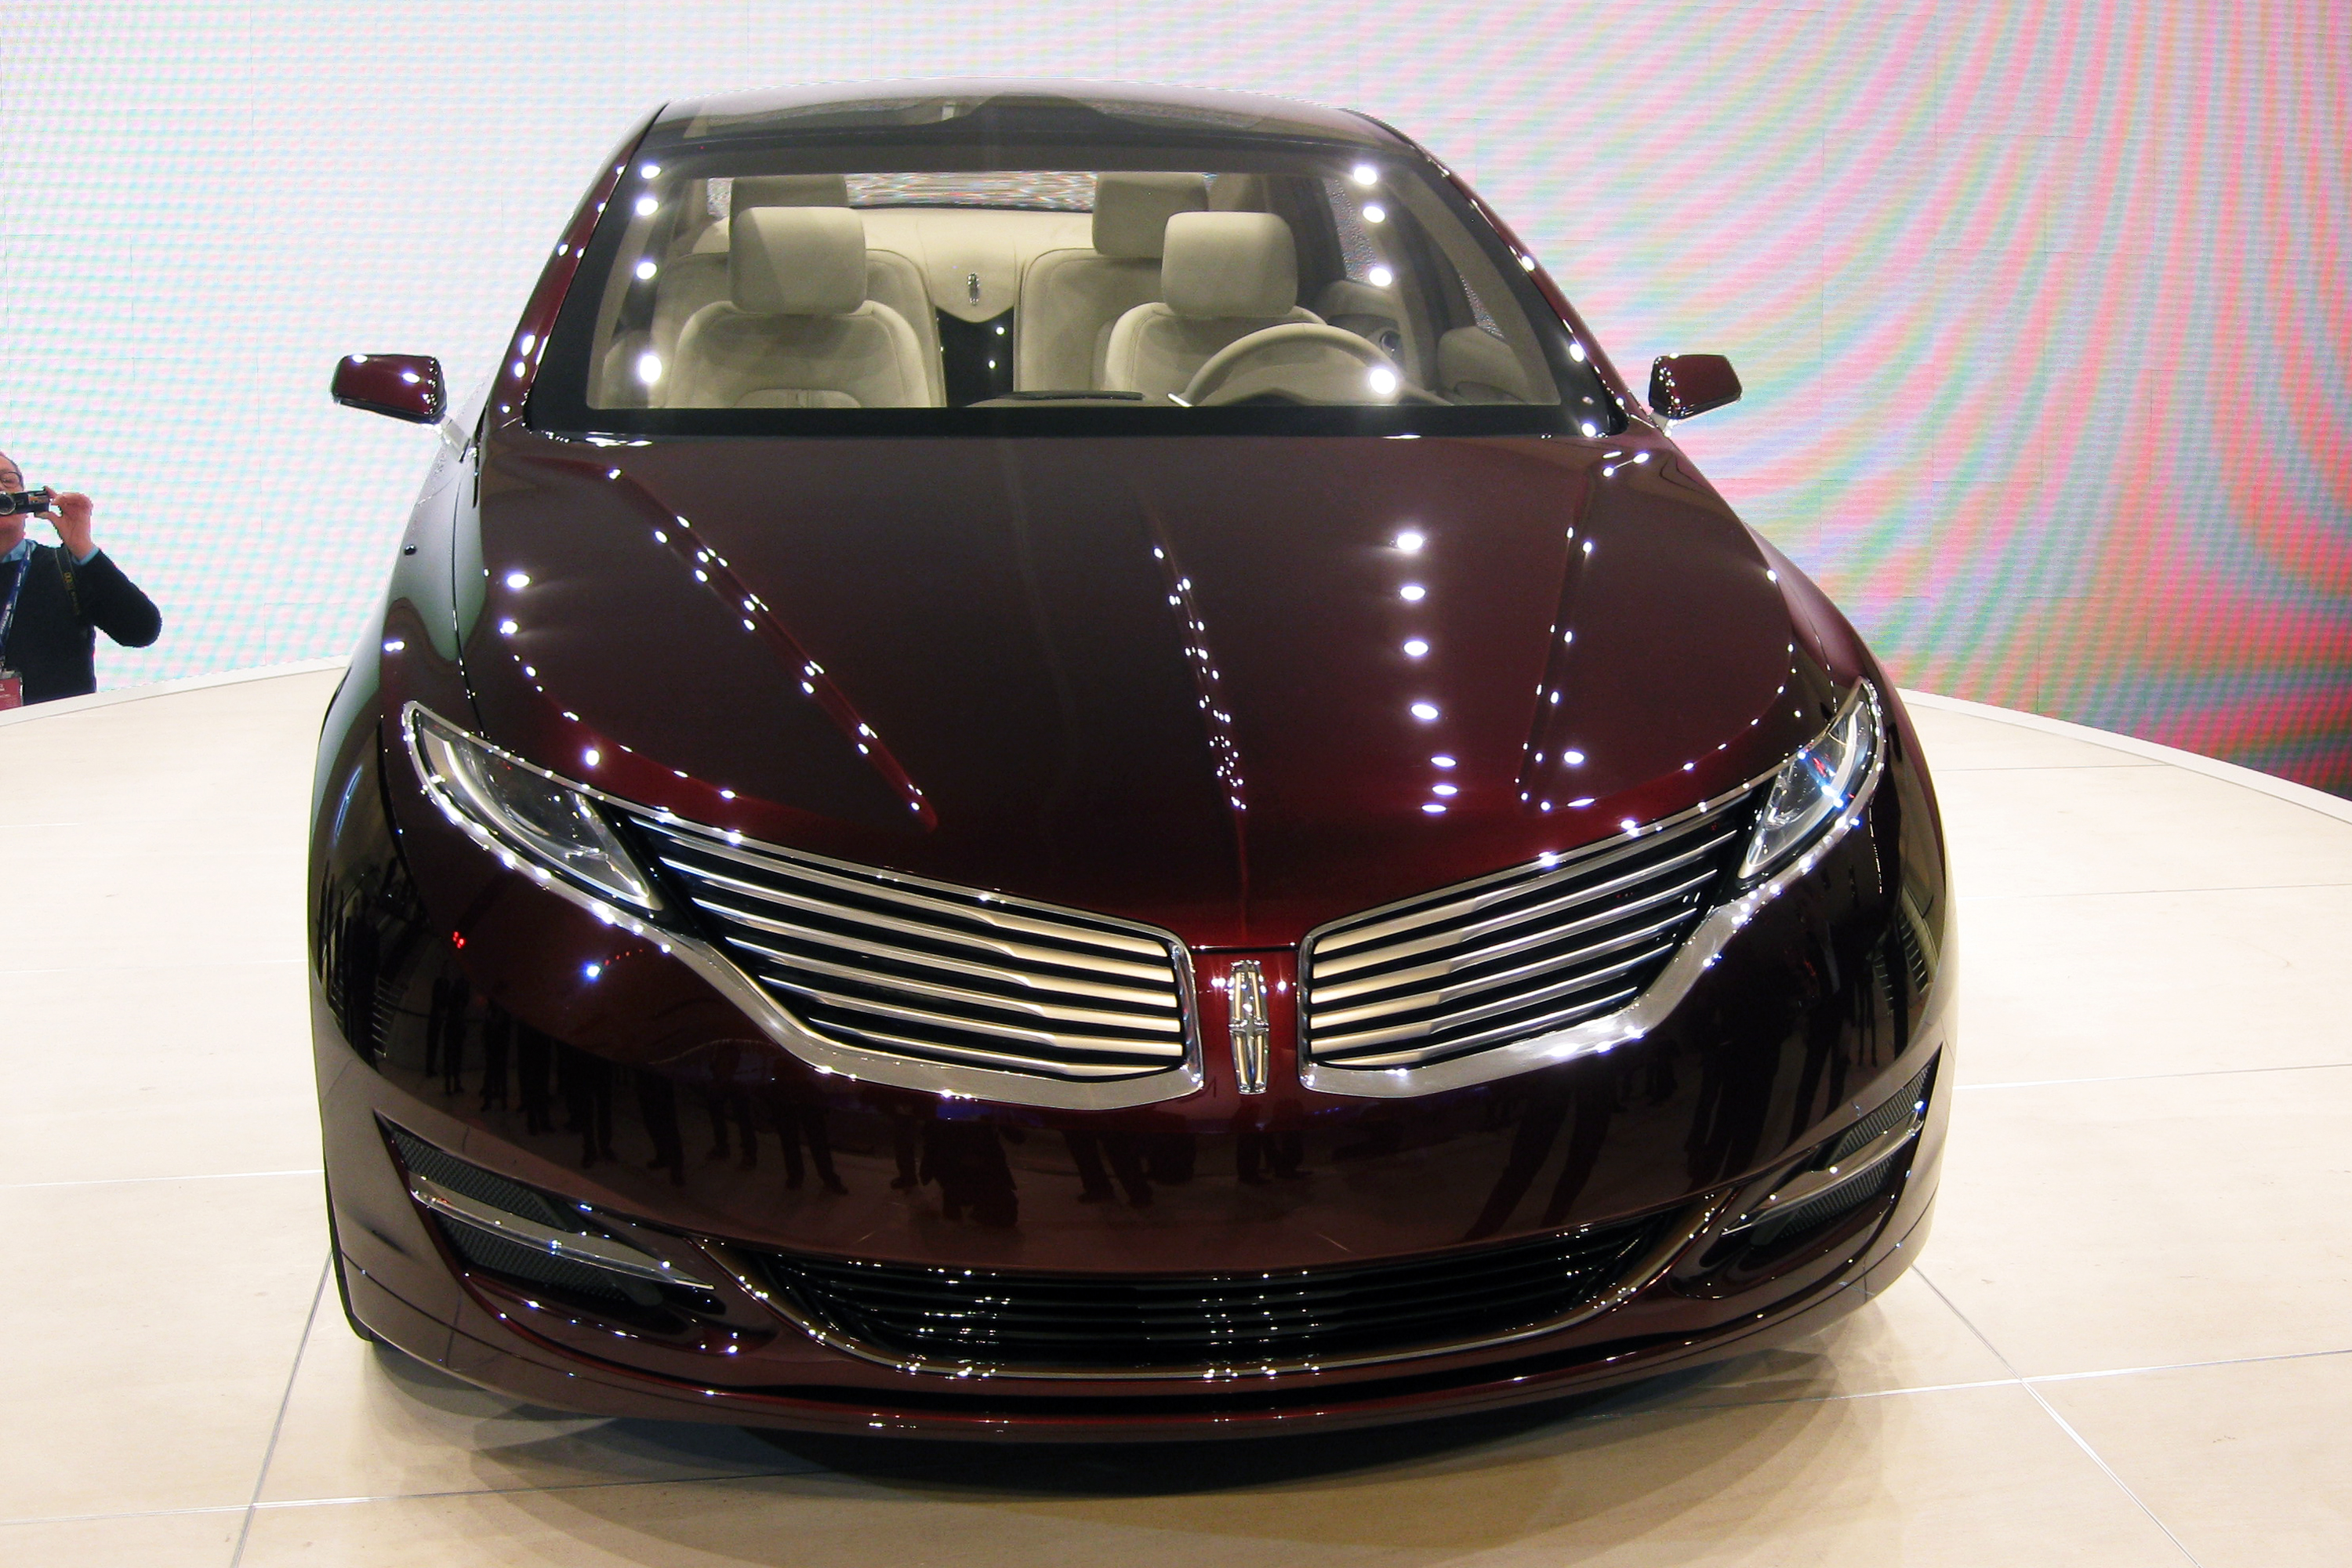 File:Lincoln MKZ concept 2012 NAIAS.jpg - Wikimedia Commons